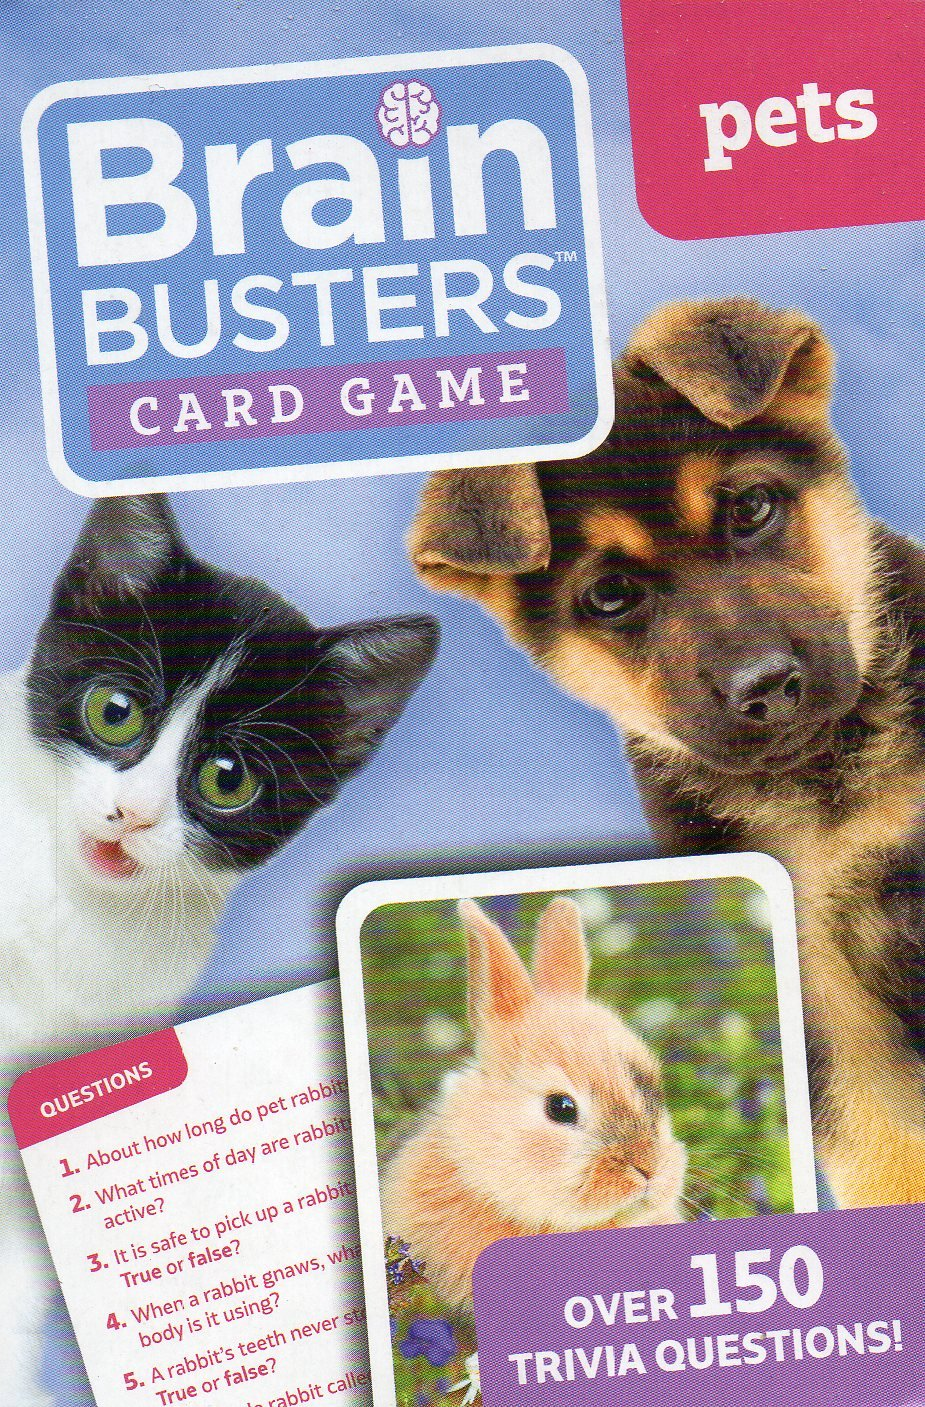 Brain Busters Card Game - Pets - with Over 150 Trivia Questions - Educational Flash Cards